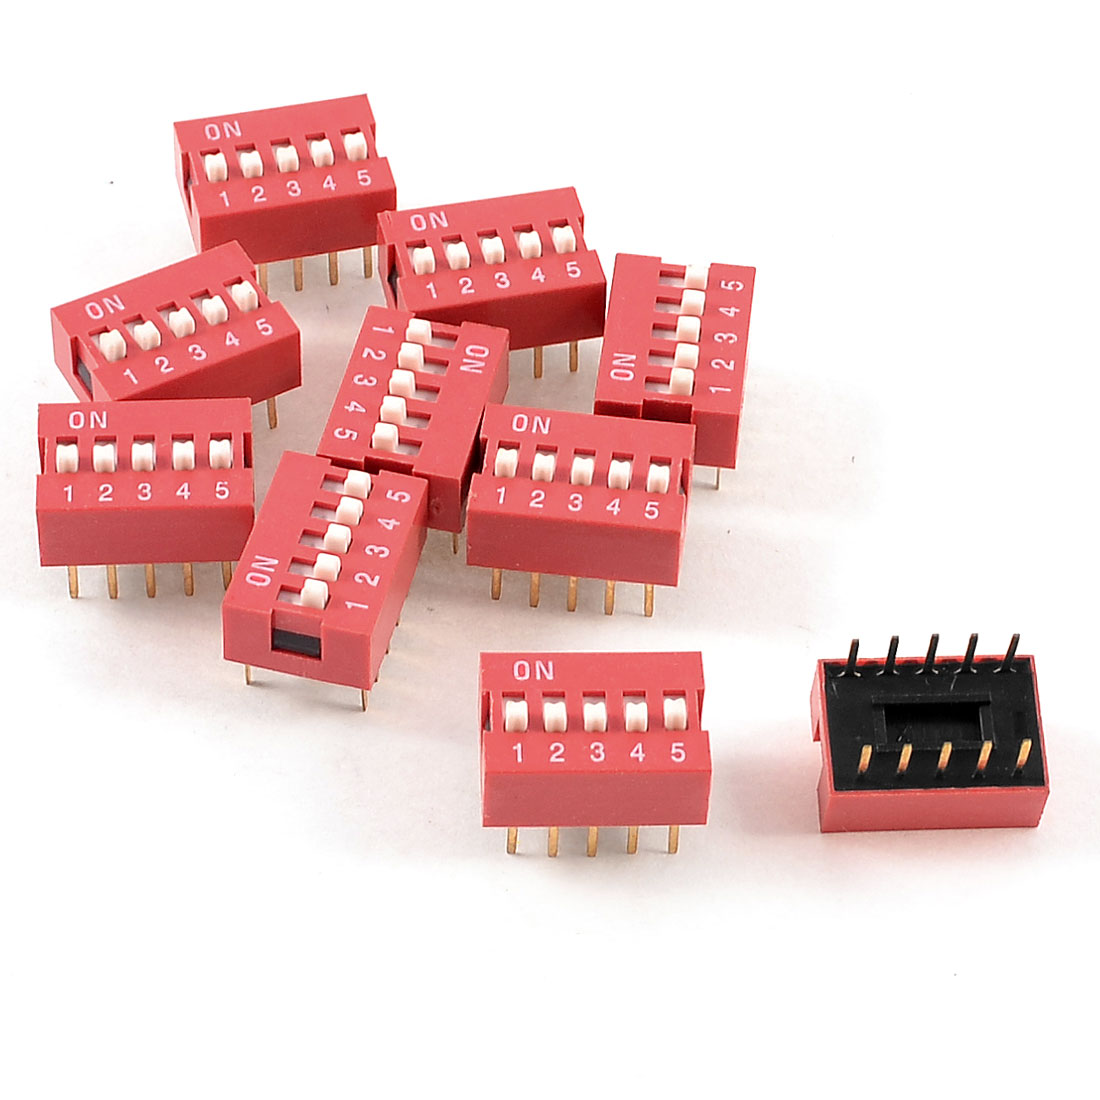 10 Pcs Red Double Row 10 Pin 5 Positions 2.54mm Pitch DIP Switches